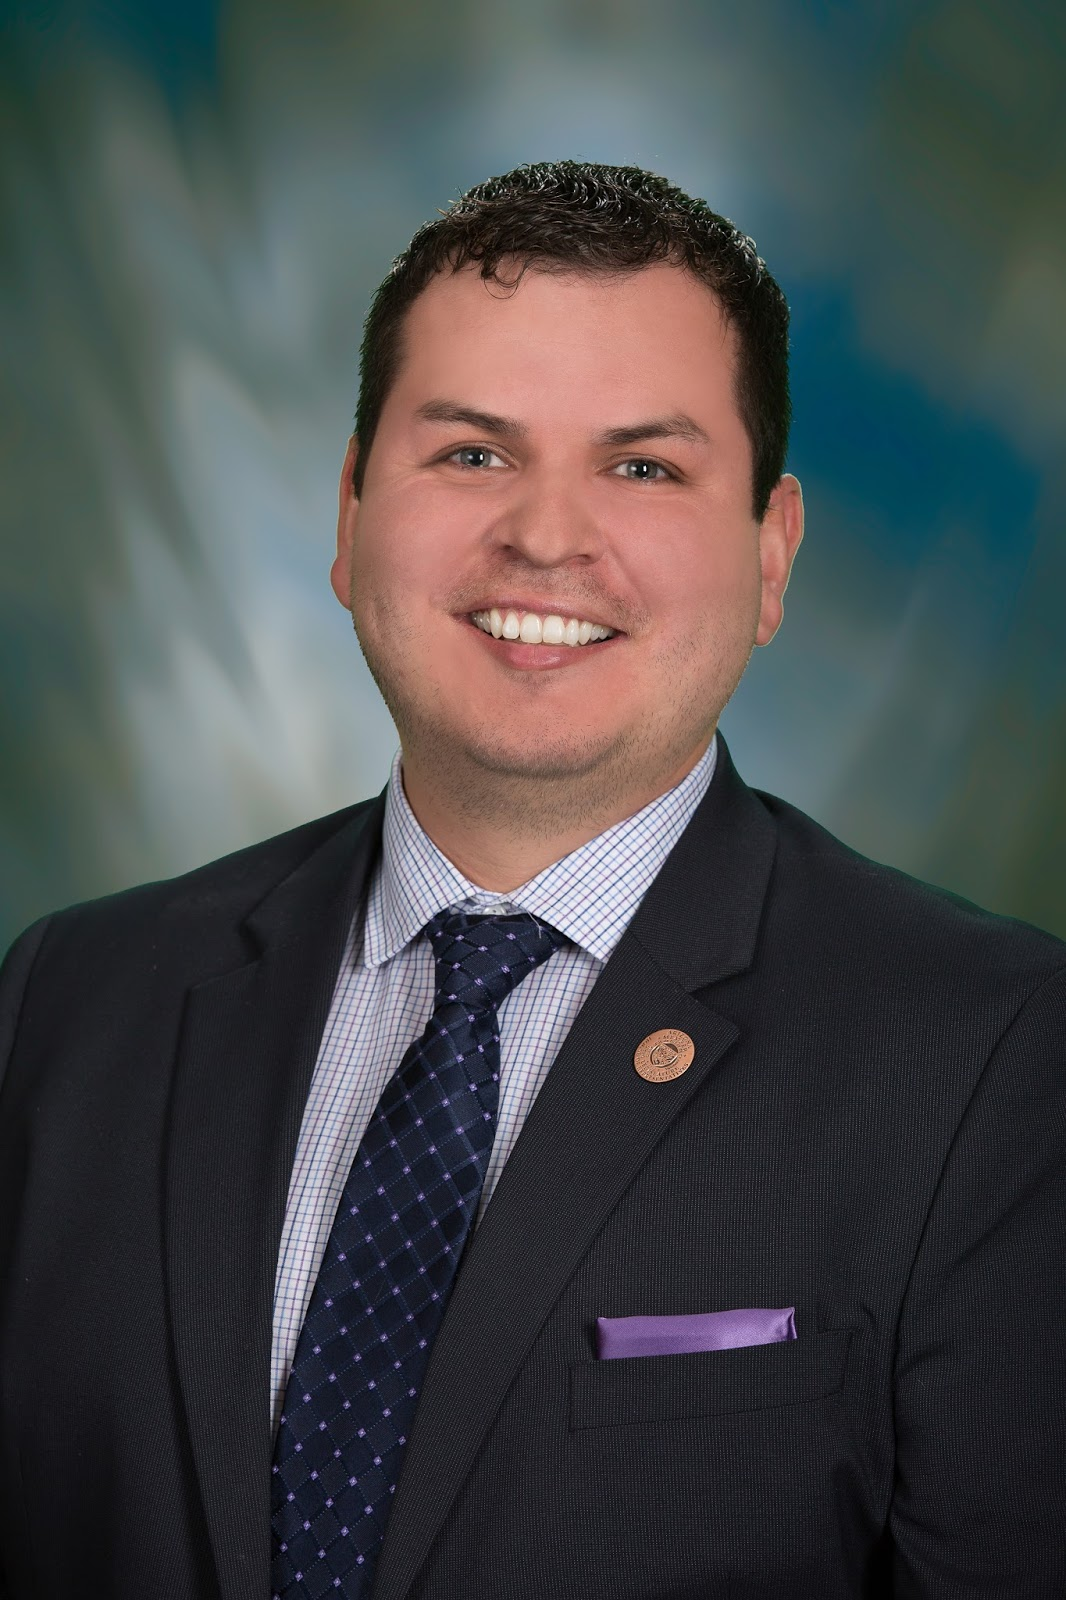 Representative Mark Cardenas